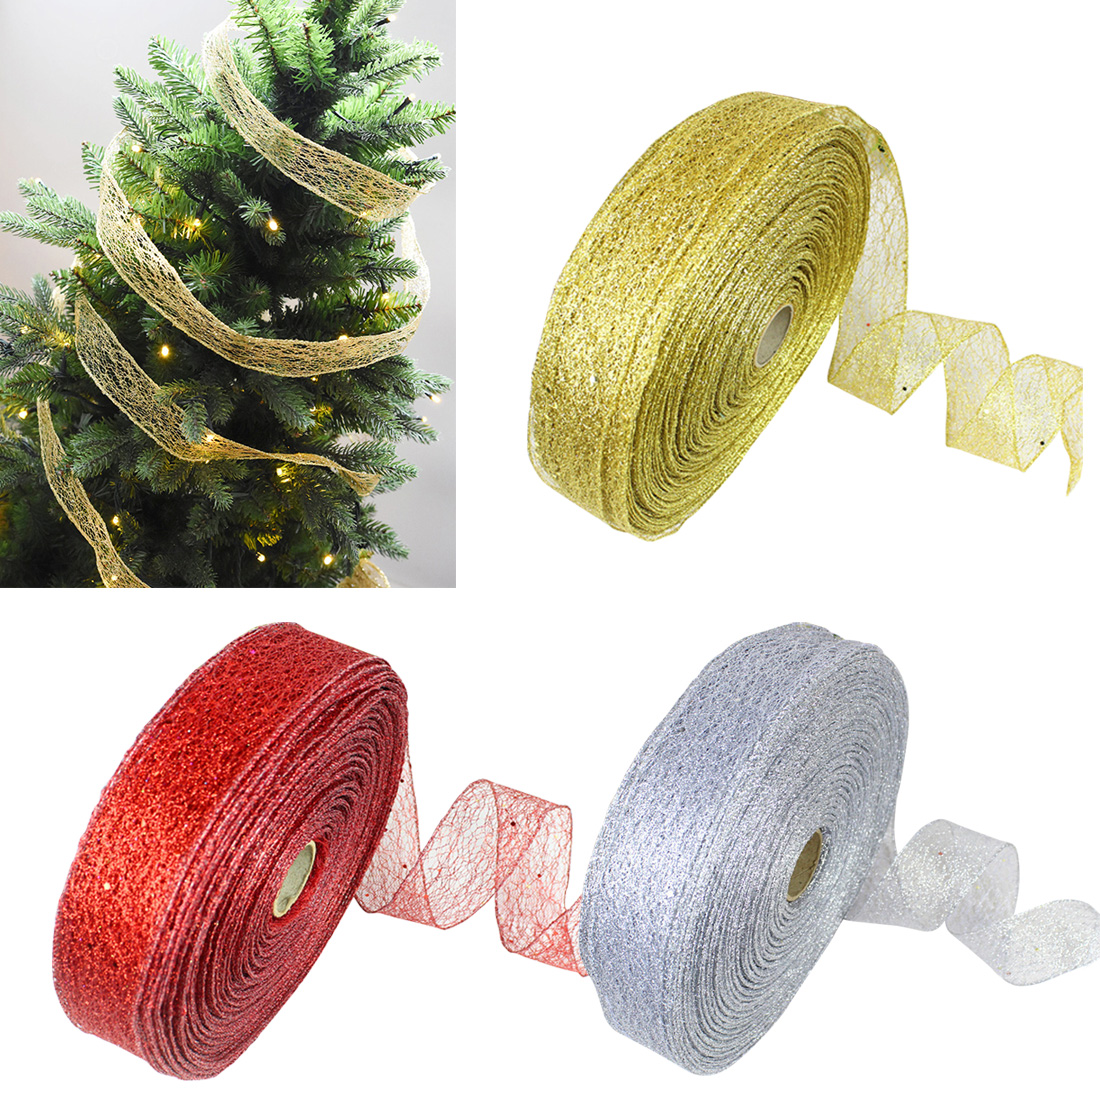 2M Gold And Silver Silk Satin Ribbon Metallic Luster Party Wedding Decoration Gift Christmas New Year DIY Decor Material Bowknot